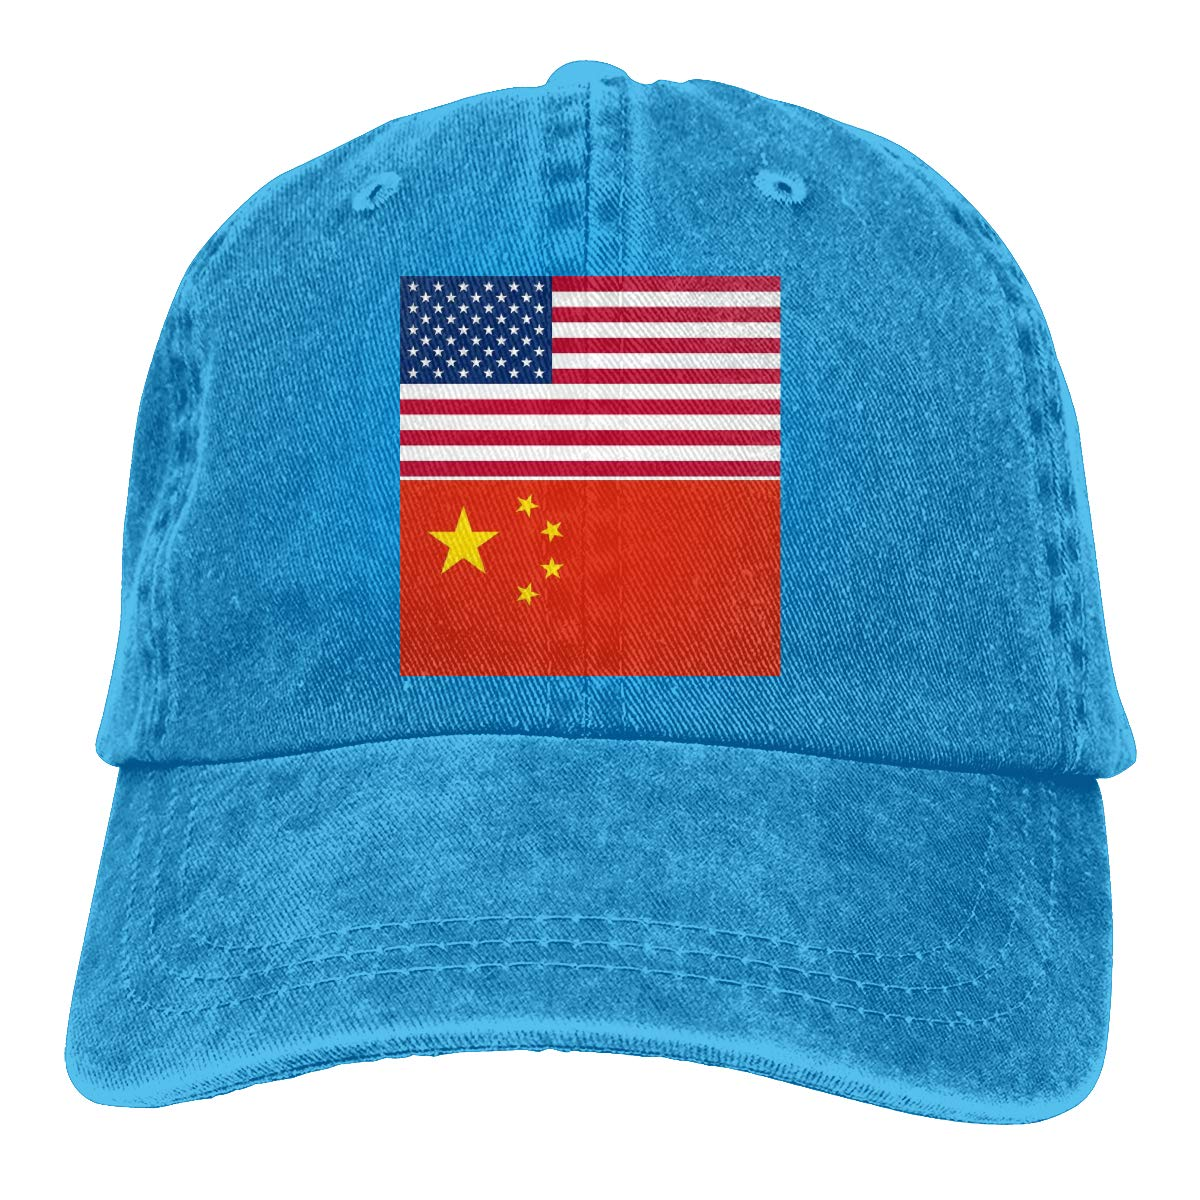 PMGM-C American Flag and Chinese Flag Unisex Trendy Cowboy Hip Hop Cap Adjustable Baseball Cap